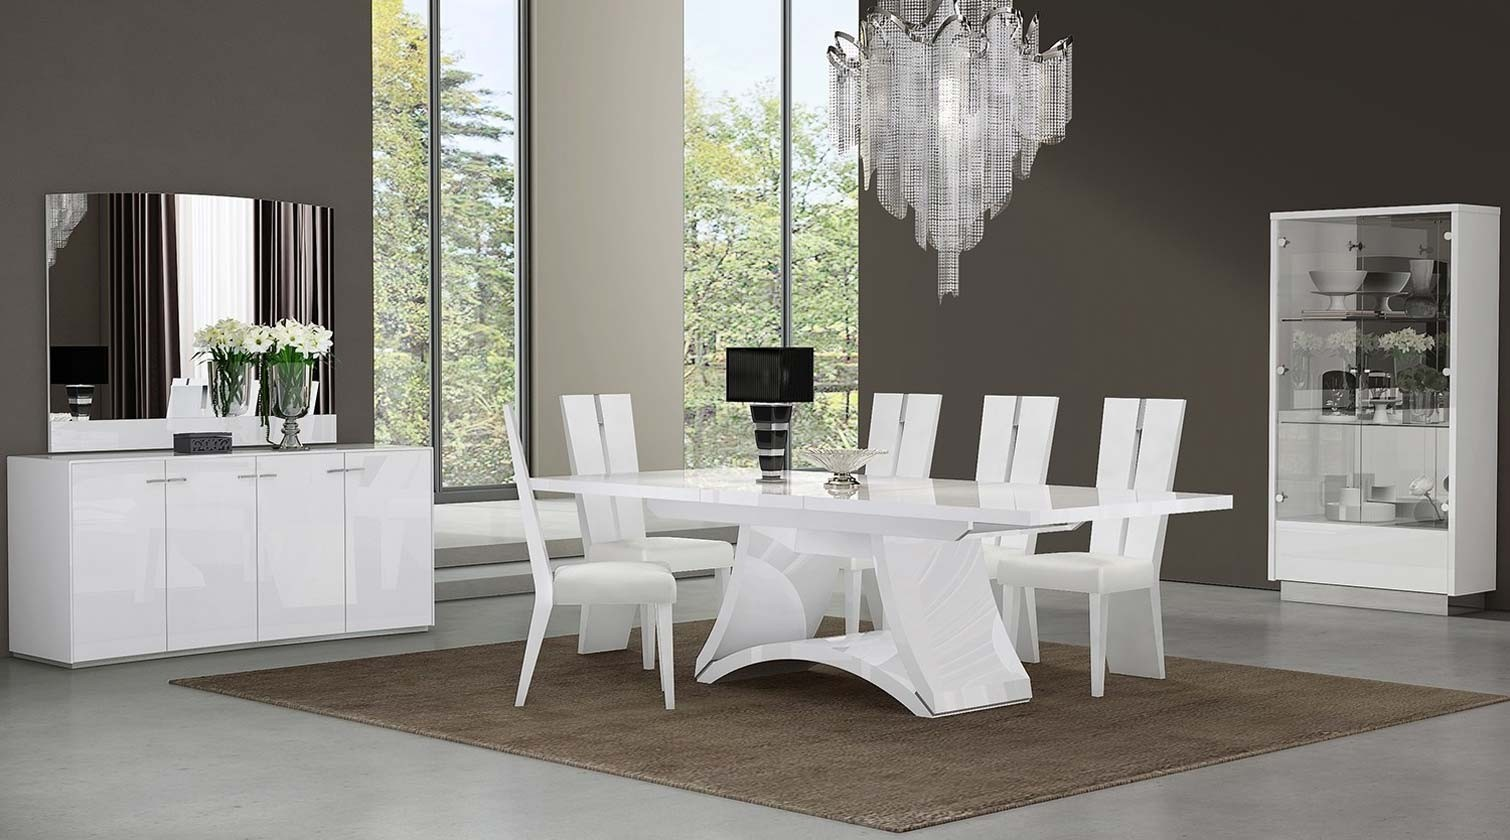 D313 Modern Dining Room Set In White